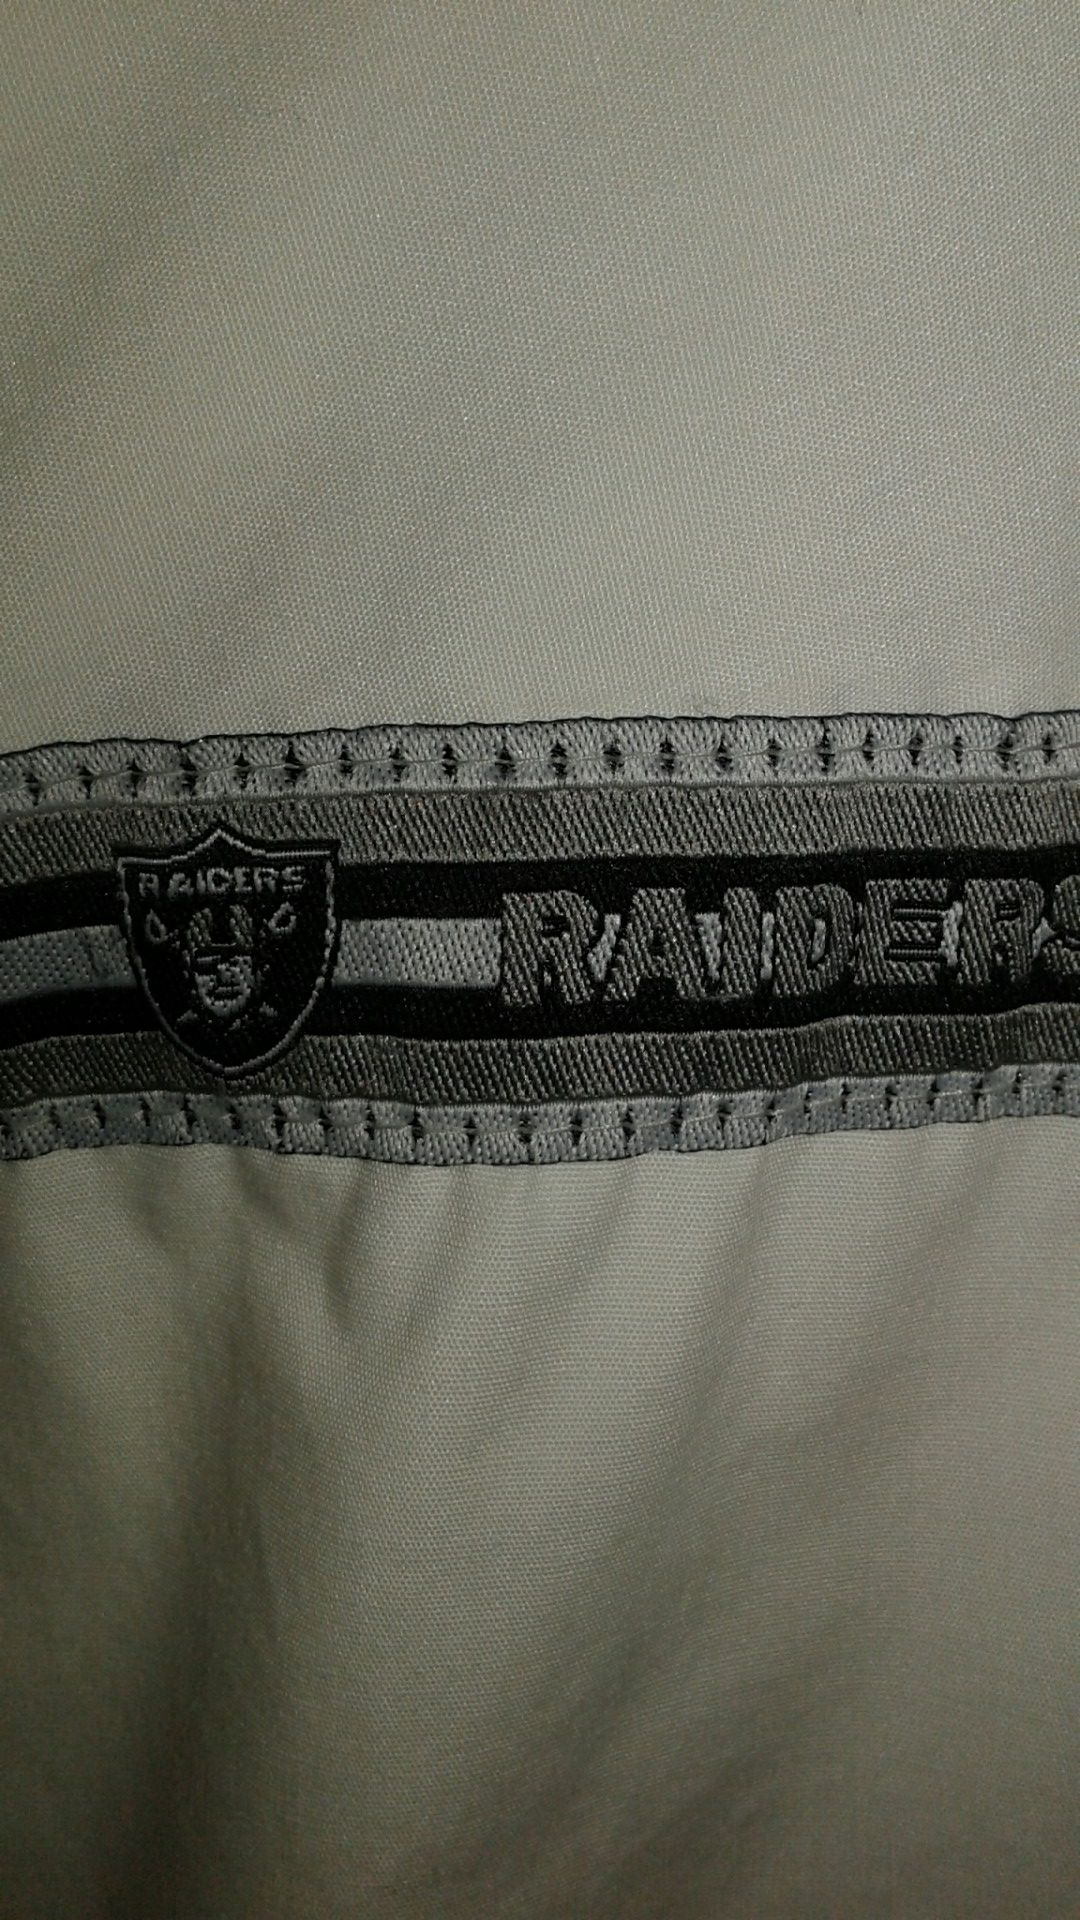 Vintage 90s RAIDERS pro player thin jacket white with Raiders